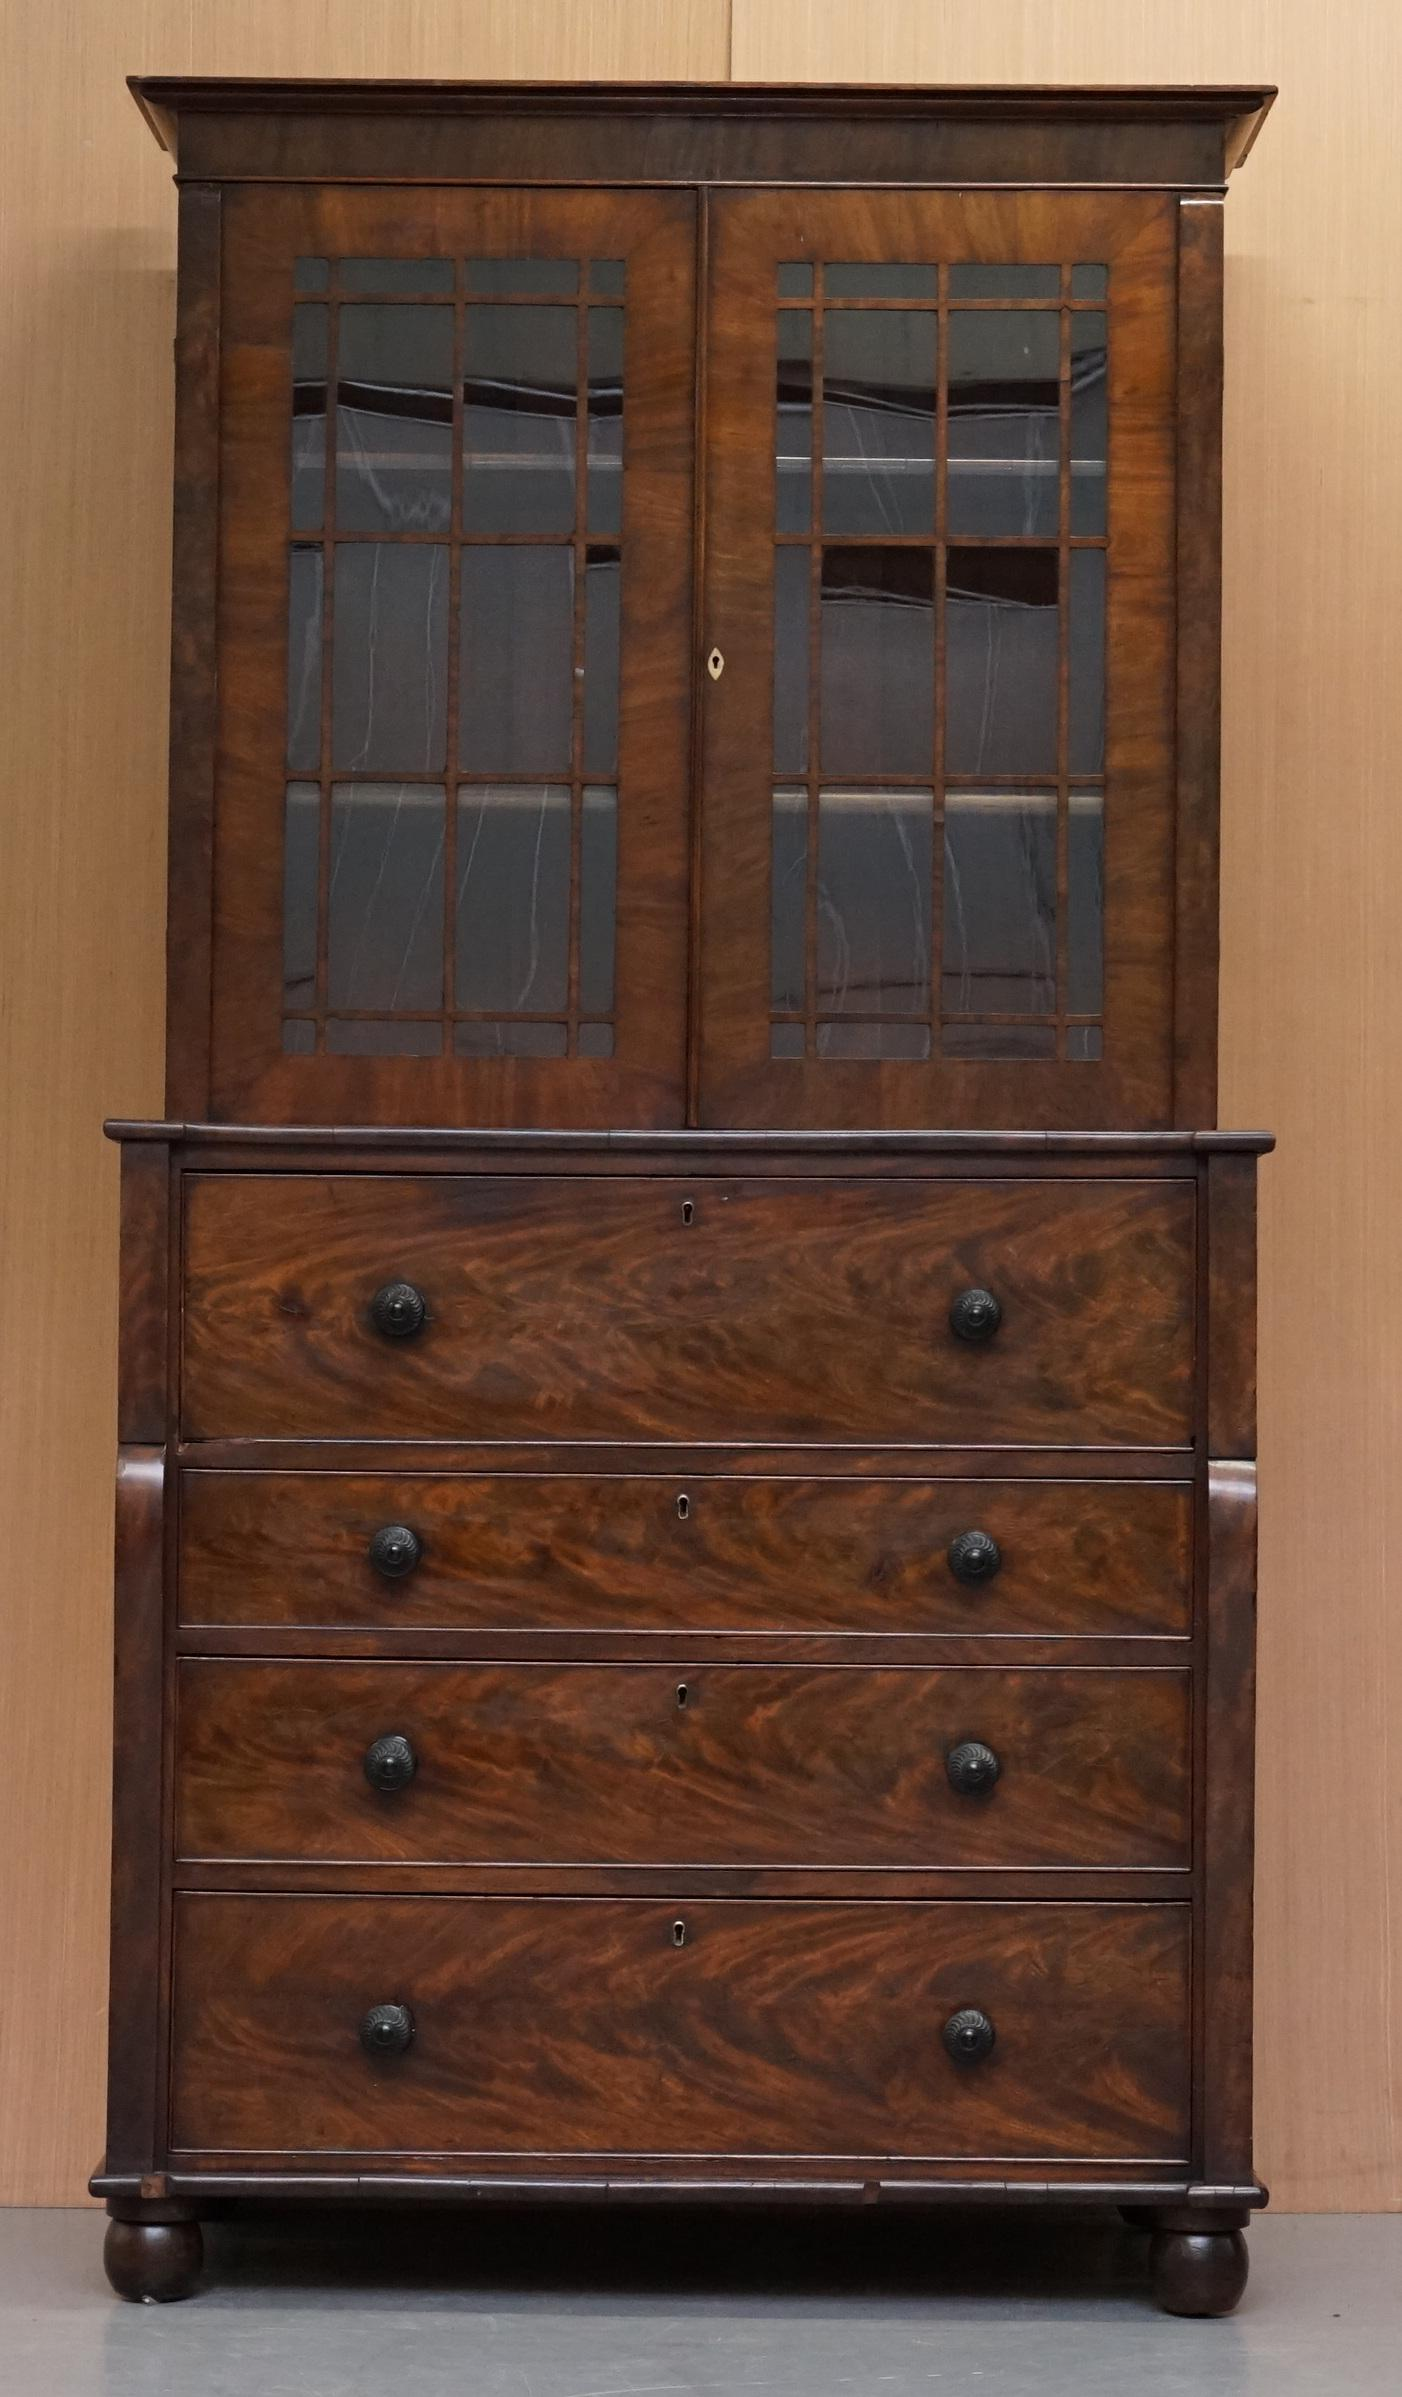 Rare Victorian Flamed Mahogany Library Bookcase Secretaire Desk Chest Of Drawers